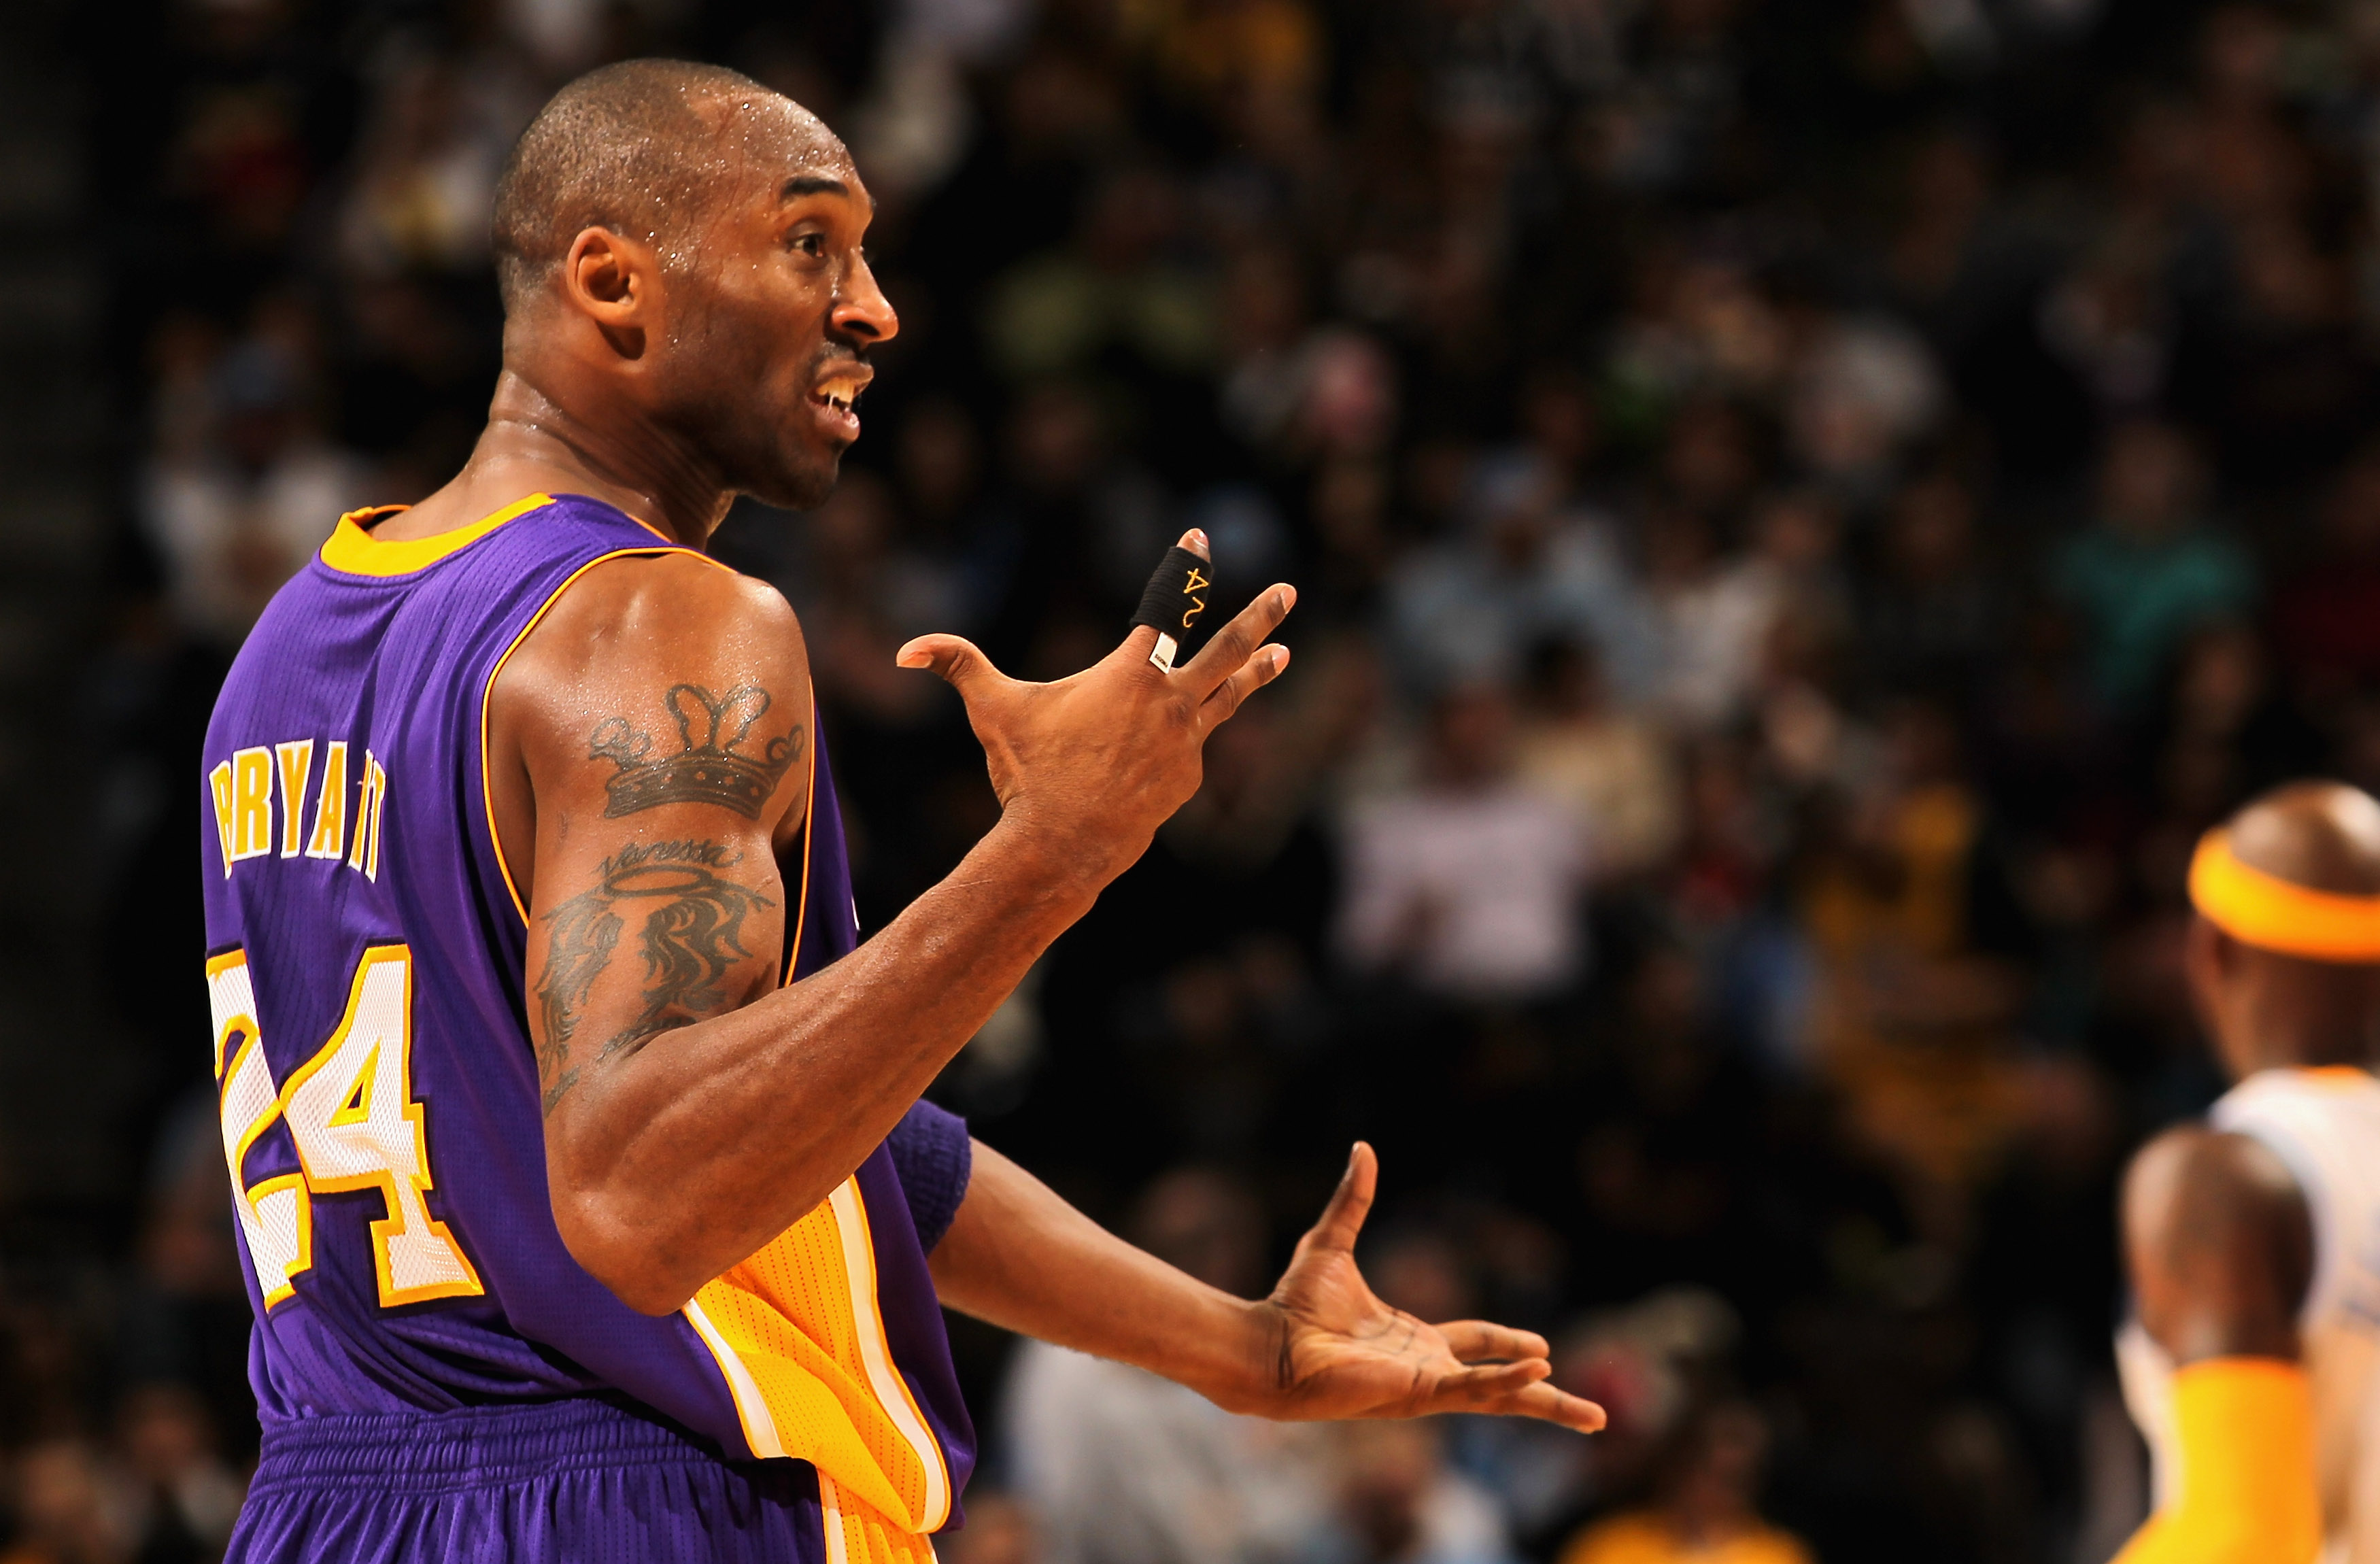 DENVER - NOVEMBER 11:  Kobe Bryant #24 of the Los Angeles Lakers reacts after a play against the Denver Nuggets at the Pepsi Center on November 11, 2010 in Denver, Colorado. The Nuggets defeated the Lakers 118-112.  NOTE TO USER: User expressly acknowledg